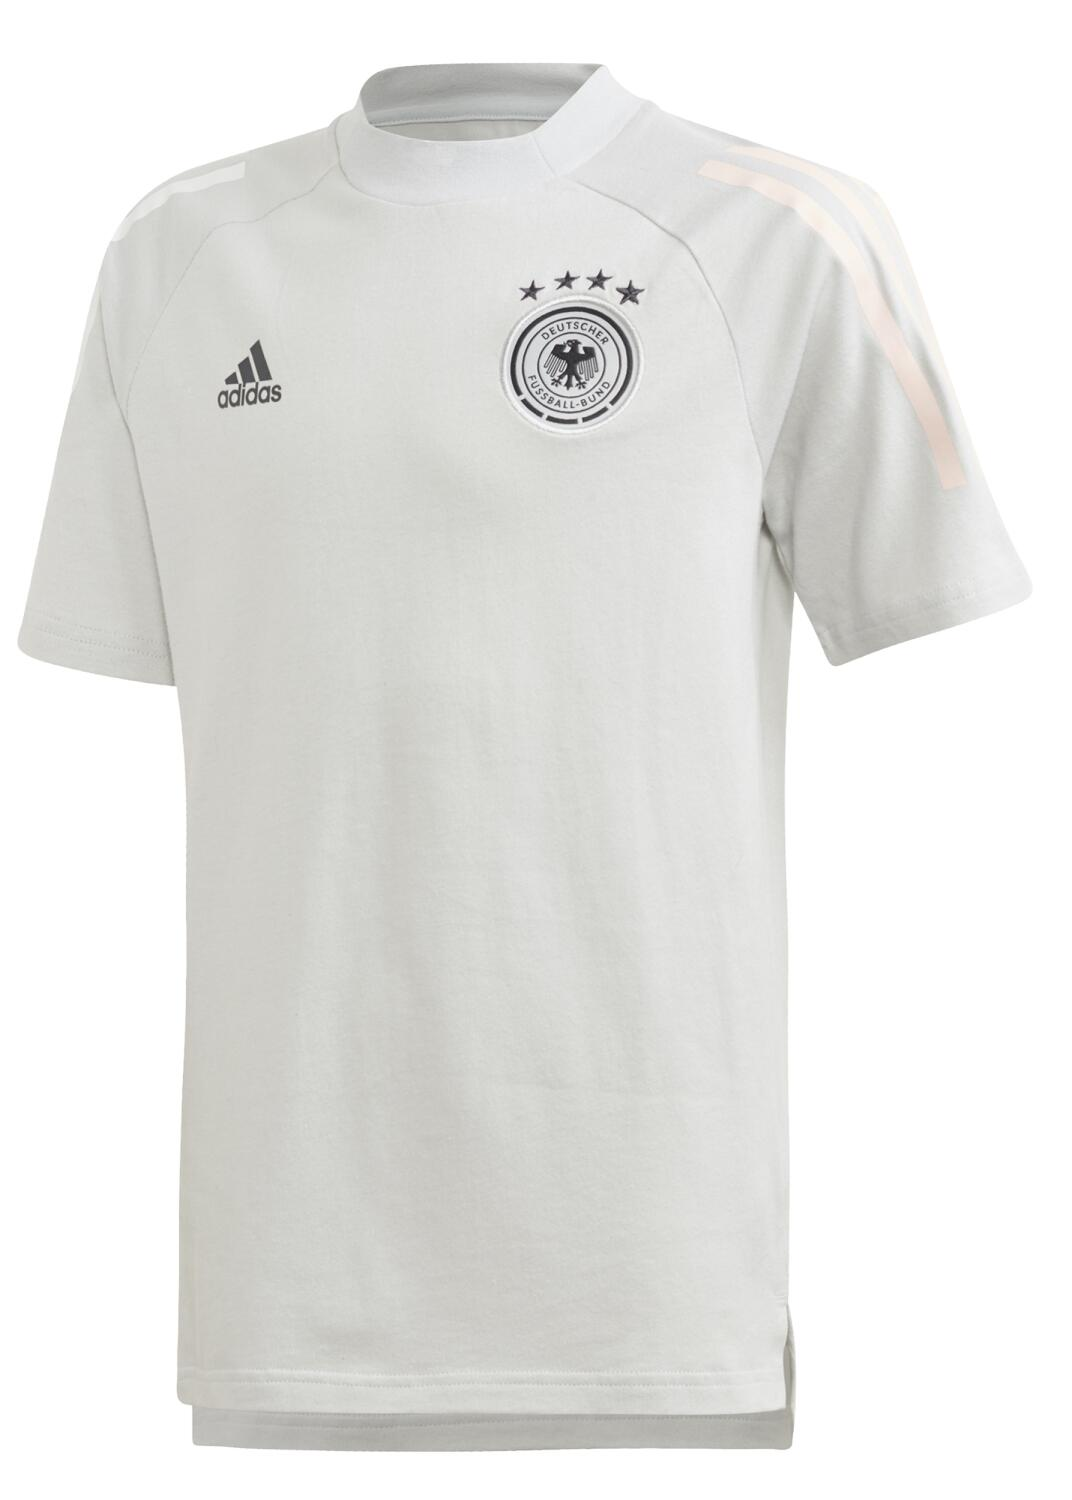 Boyssportmode - adidas DFB Trainings Tee Kindertrikot (Größe 164, clear grey) - Onlineshop Sportolino